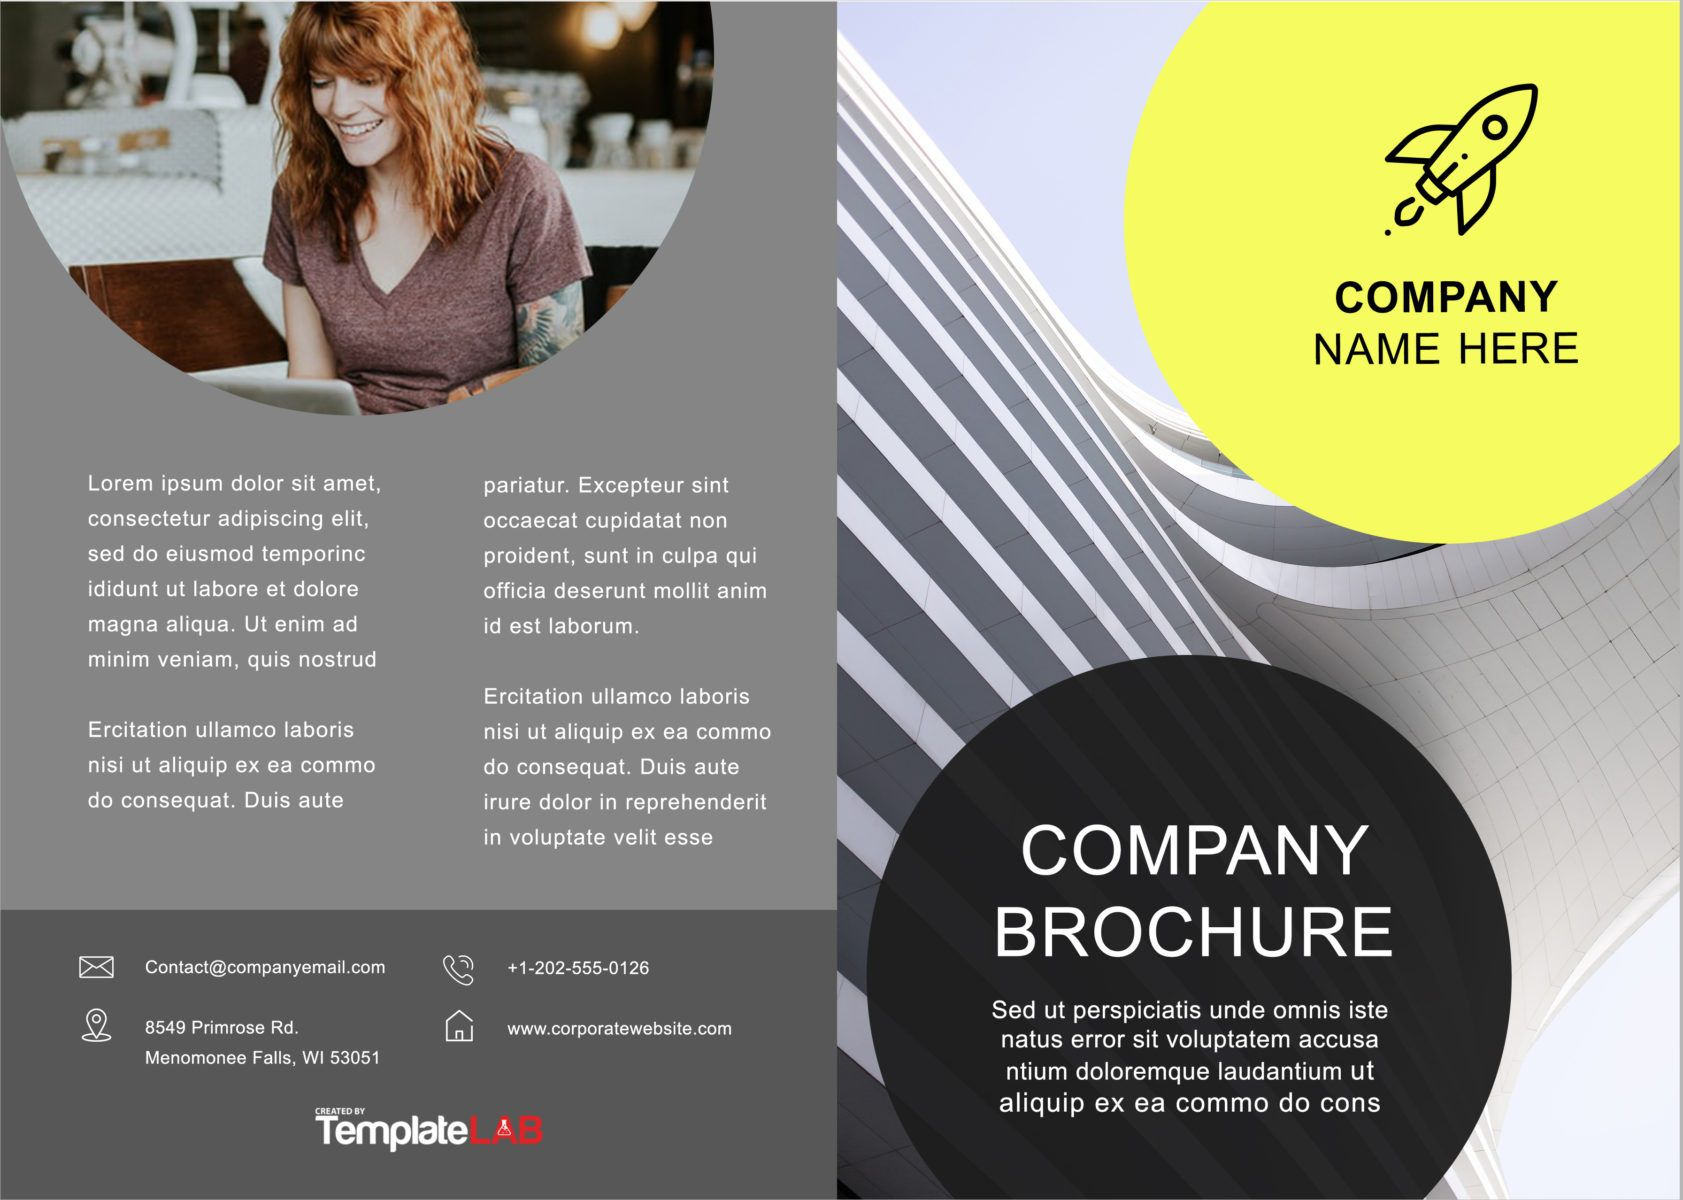 003 Fearsome Microsoft Word Brochure Template Photo  Templates 2010 Tri Fold A4 2007 Free DownloadFull